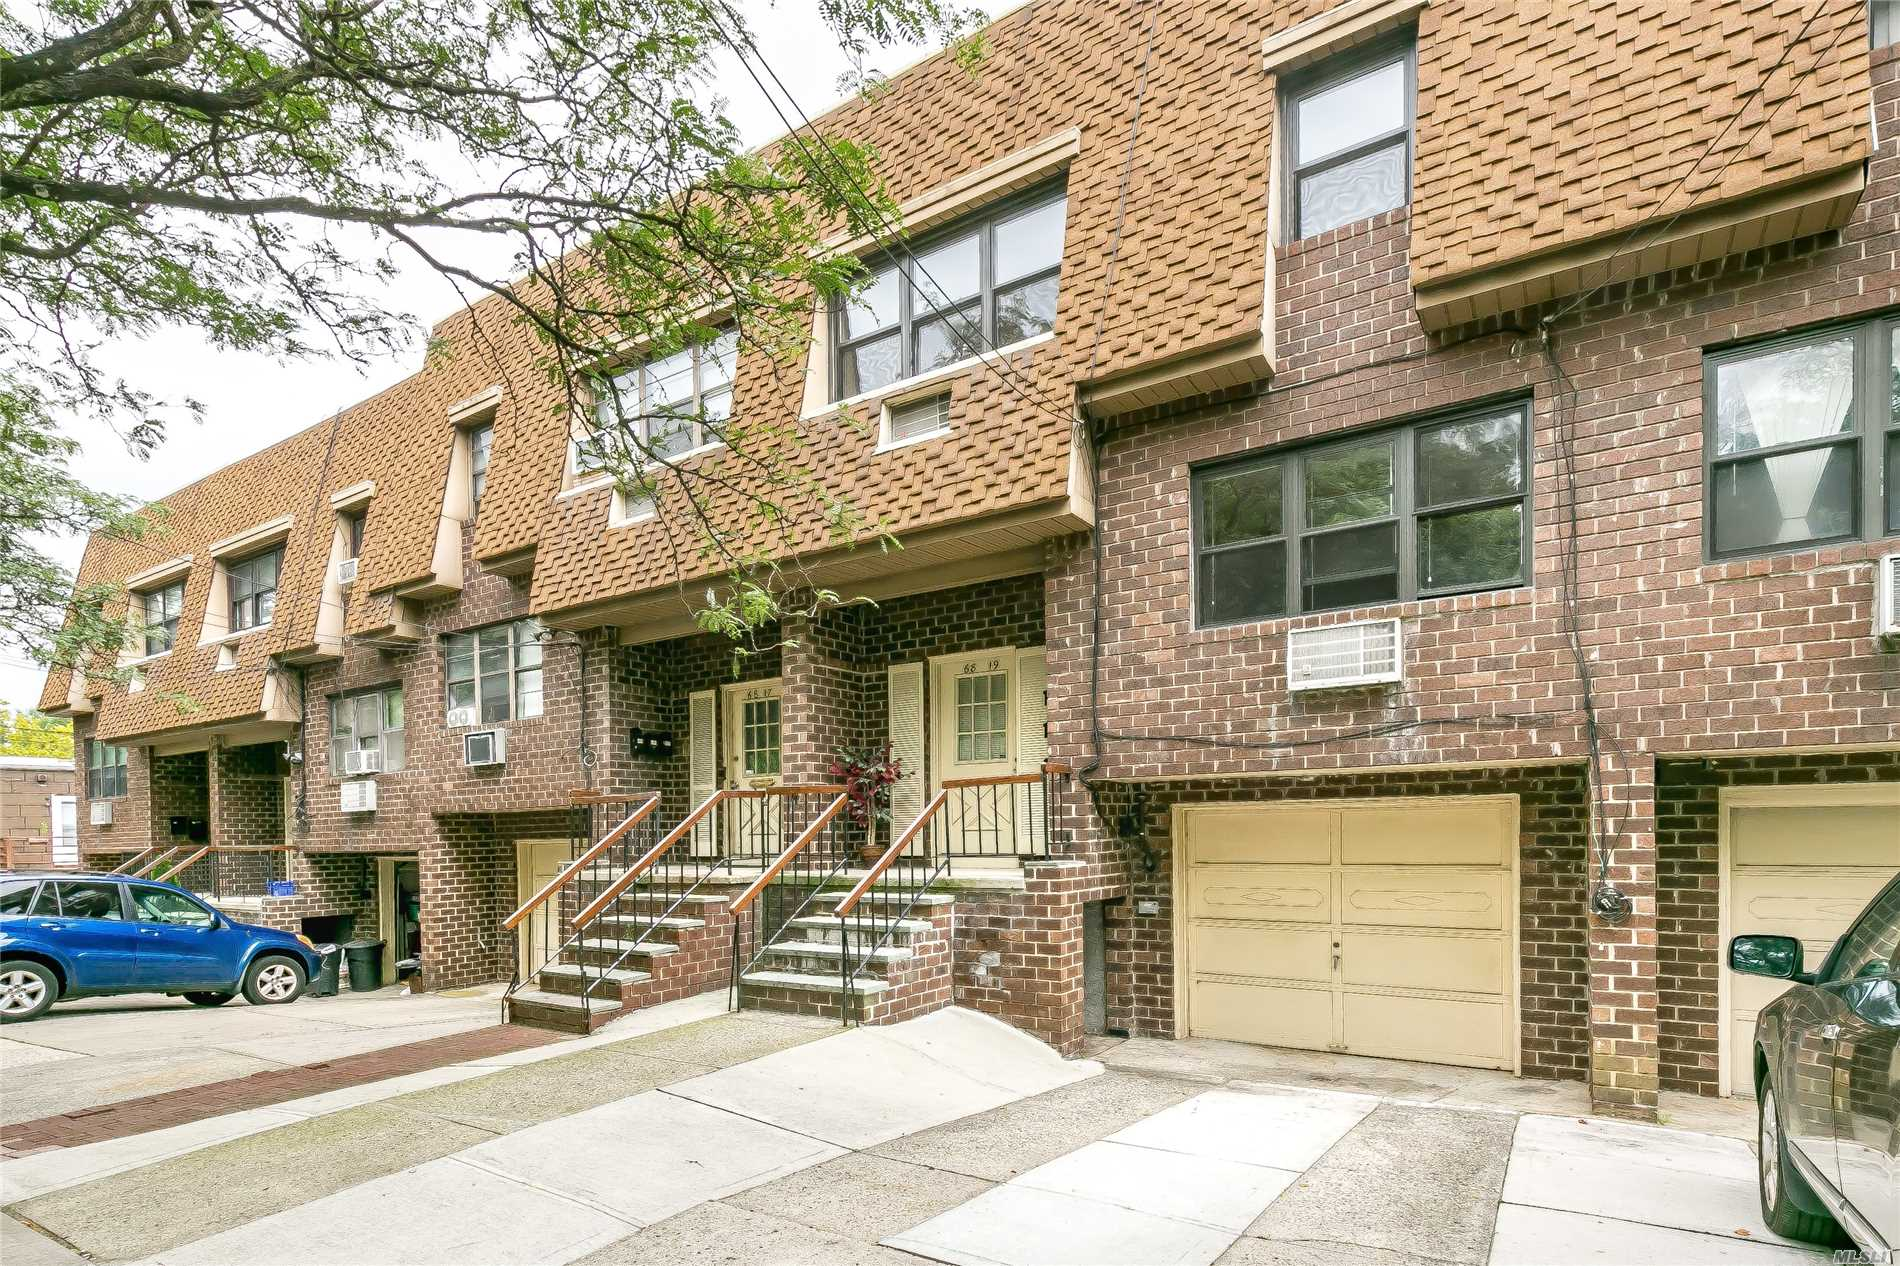 Brick Legal Two Family Condo In Excellent Condition. Convenient Desirable Location Near Supermarket, Shopping And Major Expressway. Large 3 Bedroom Apt Over 2 Bedroom Plus 1 Bedroom Walk-In. Hardwood Floors Throughout. Great Property For Both Family And Investment Use. Top School District #26.